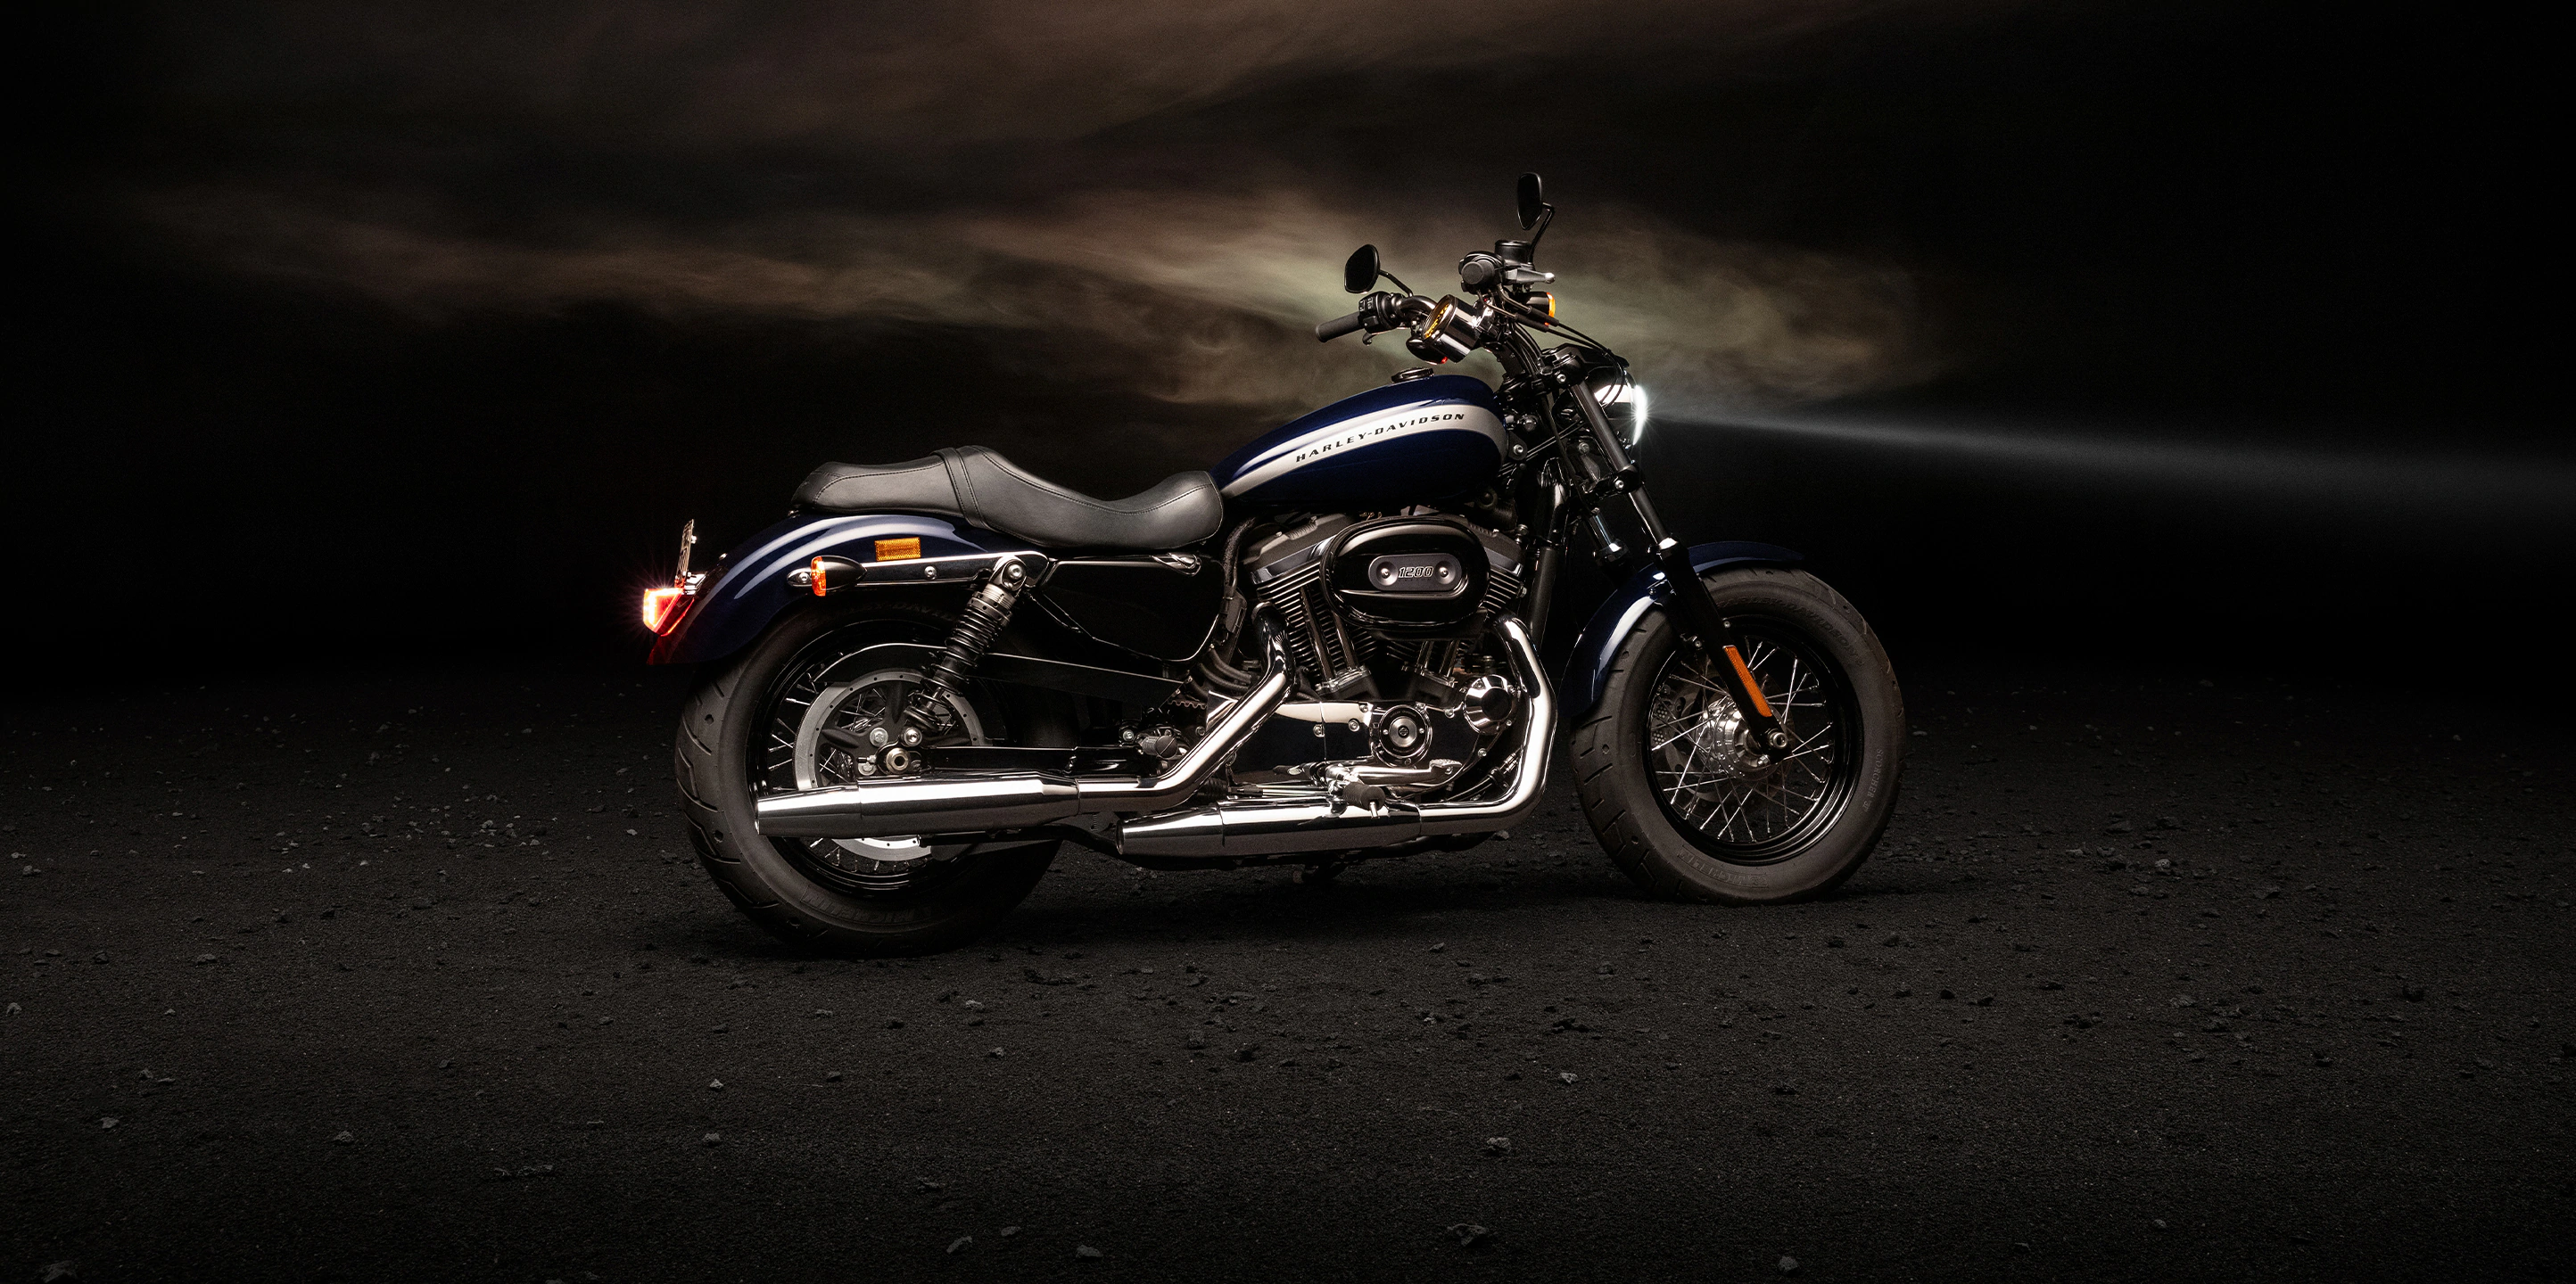 Harley Davidson 2020 1200 Custom For Sale At Central Coast Harley Davidson In West Gosford Nsw Specifications And Review Information